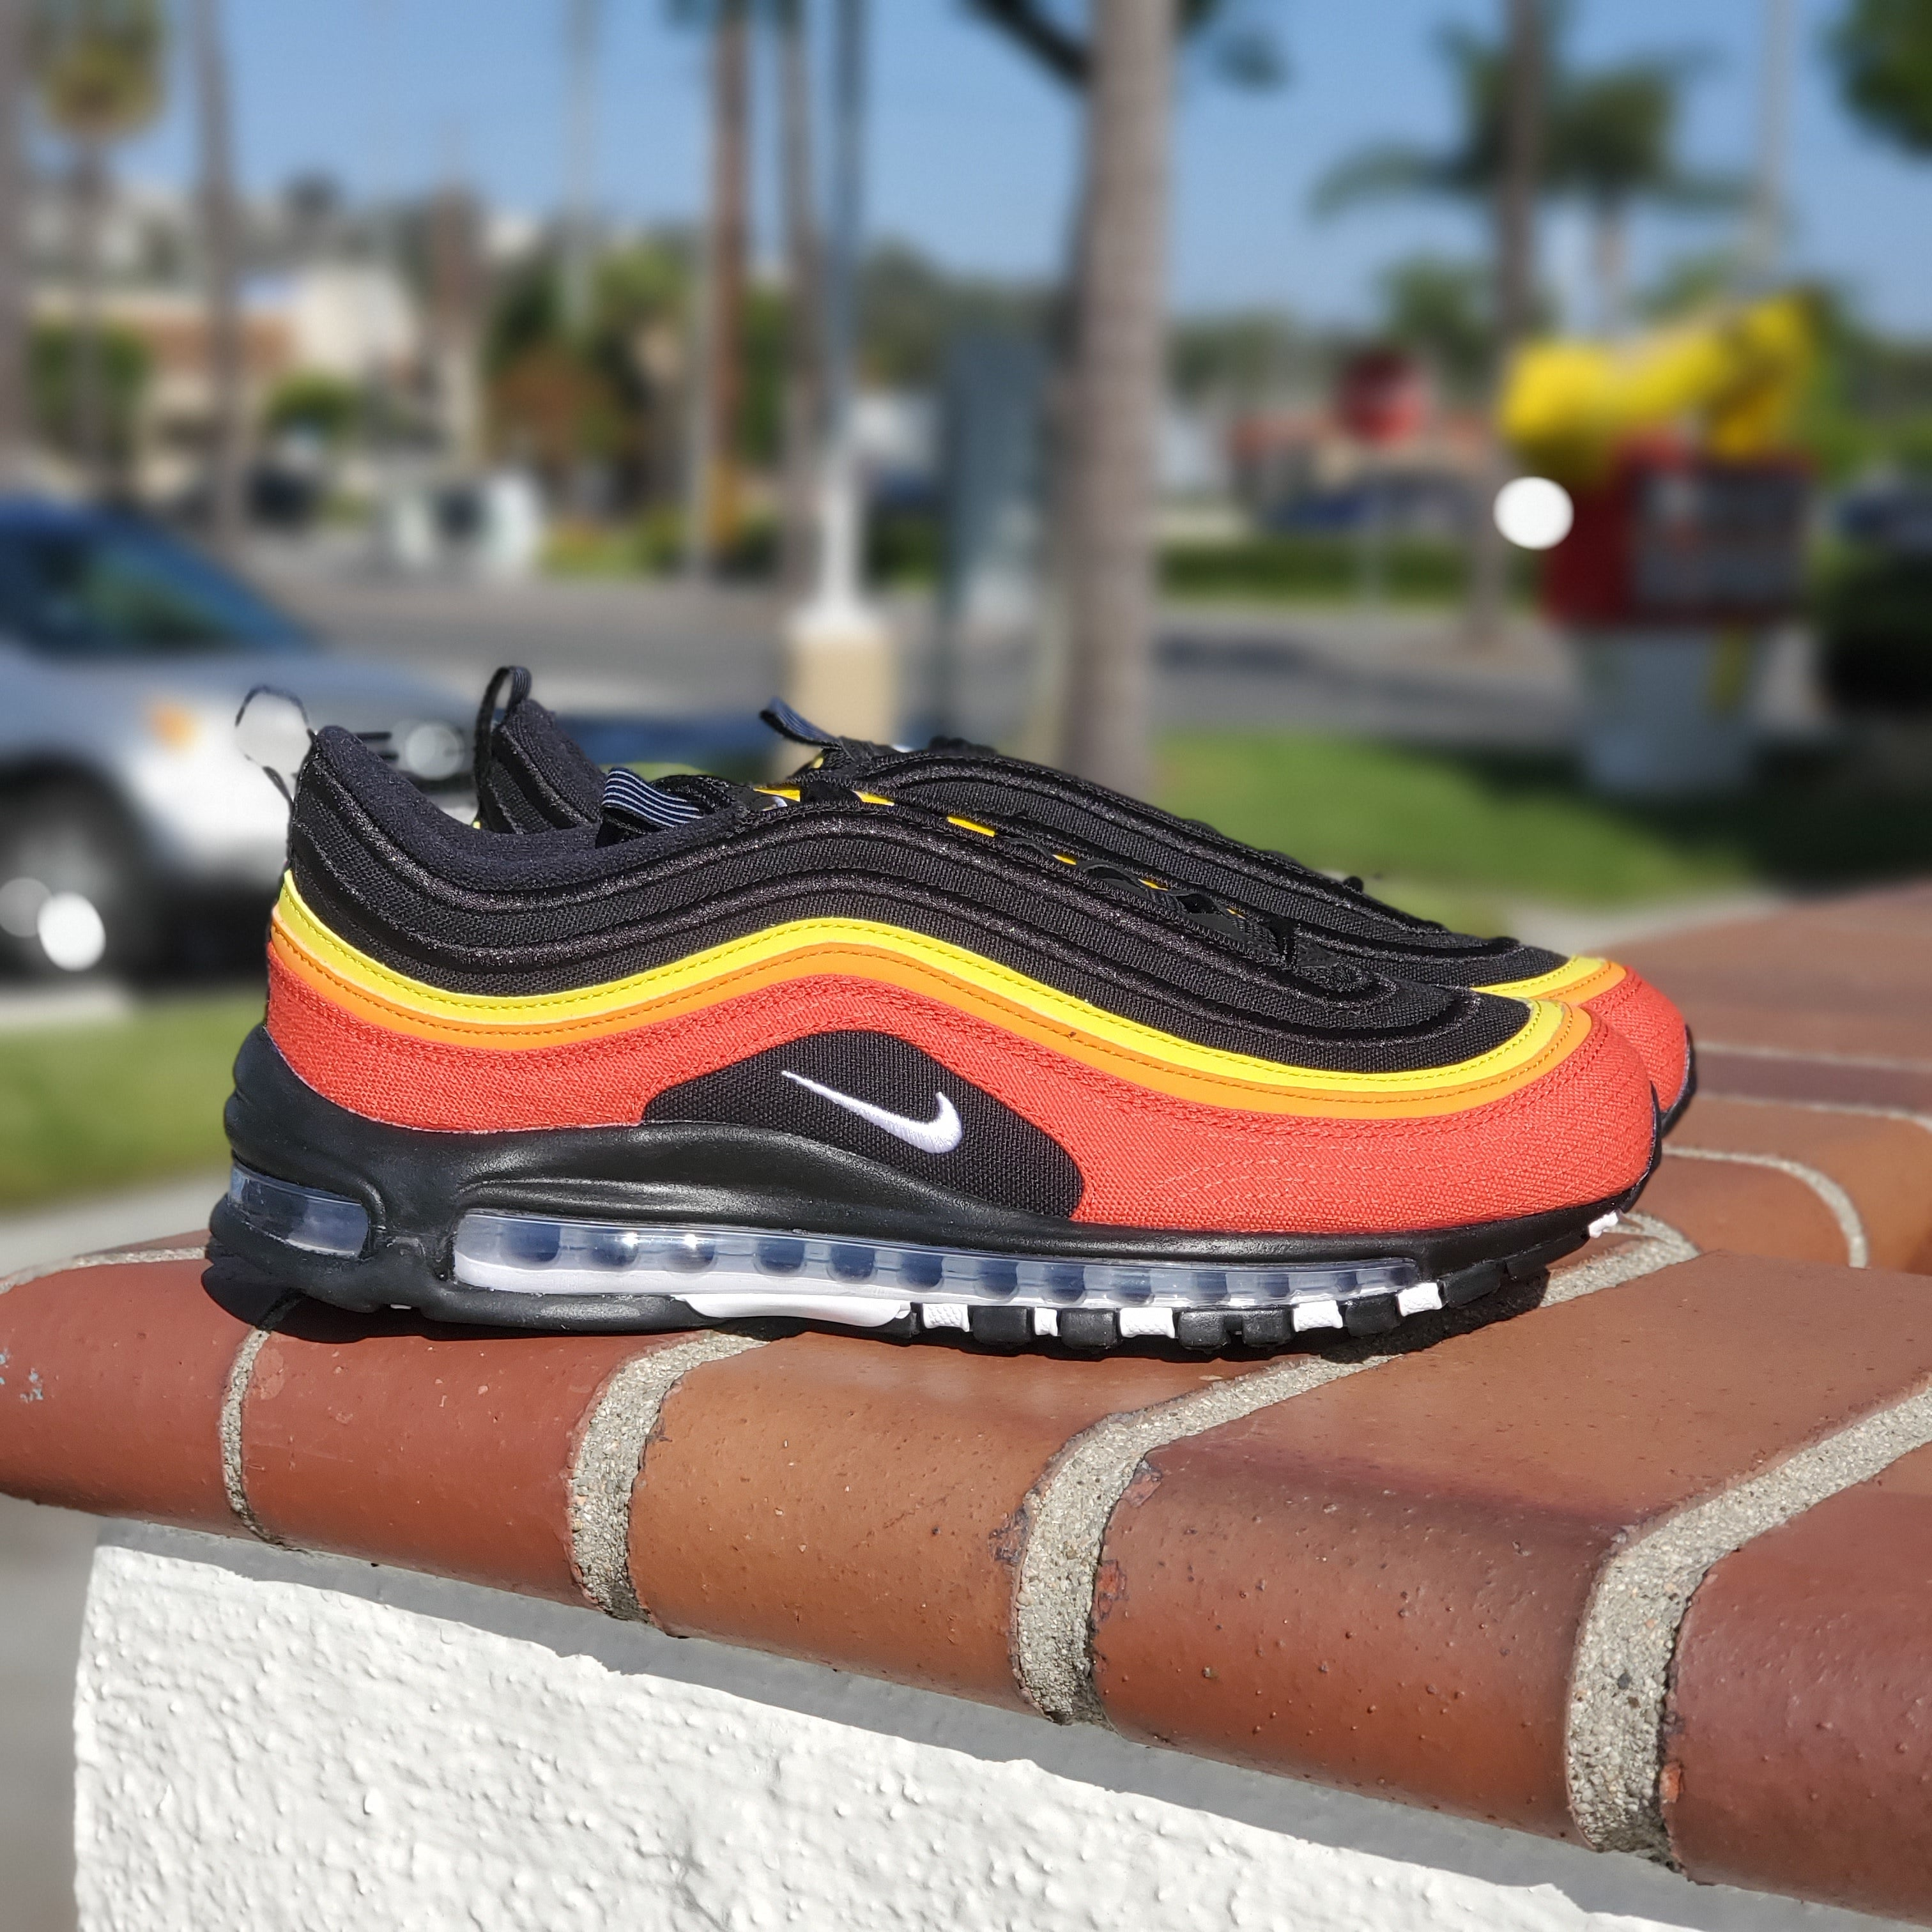 NIKE AIR MAX 97 BLACK/WHITE-CHILE RED